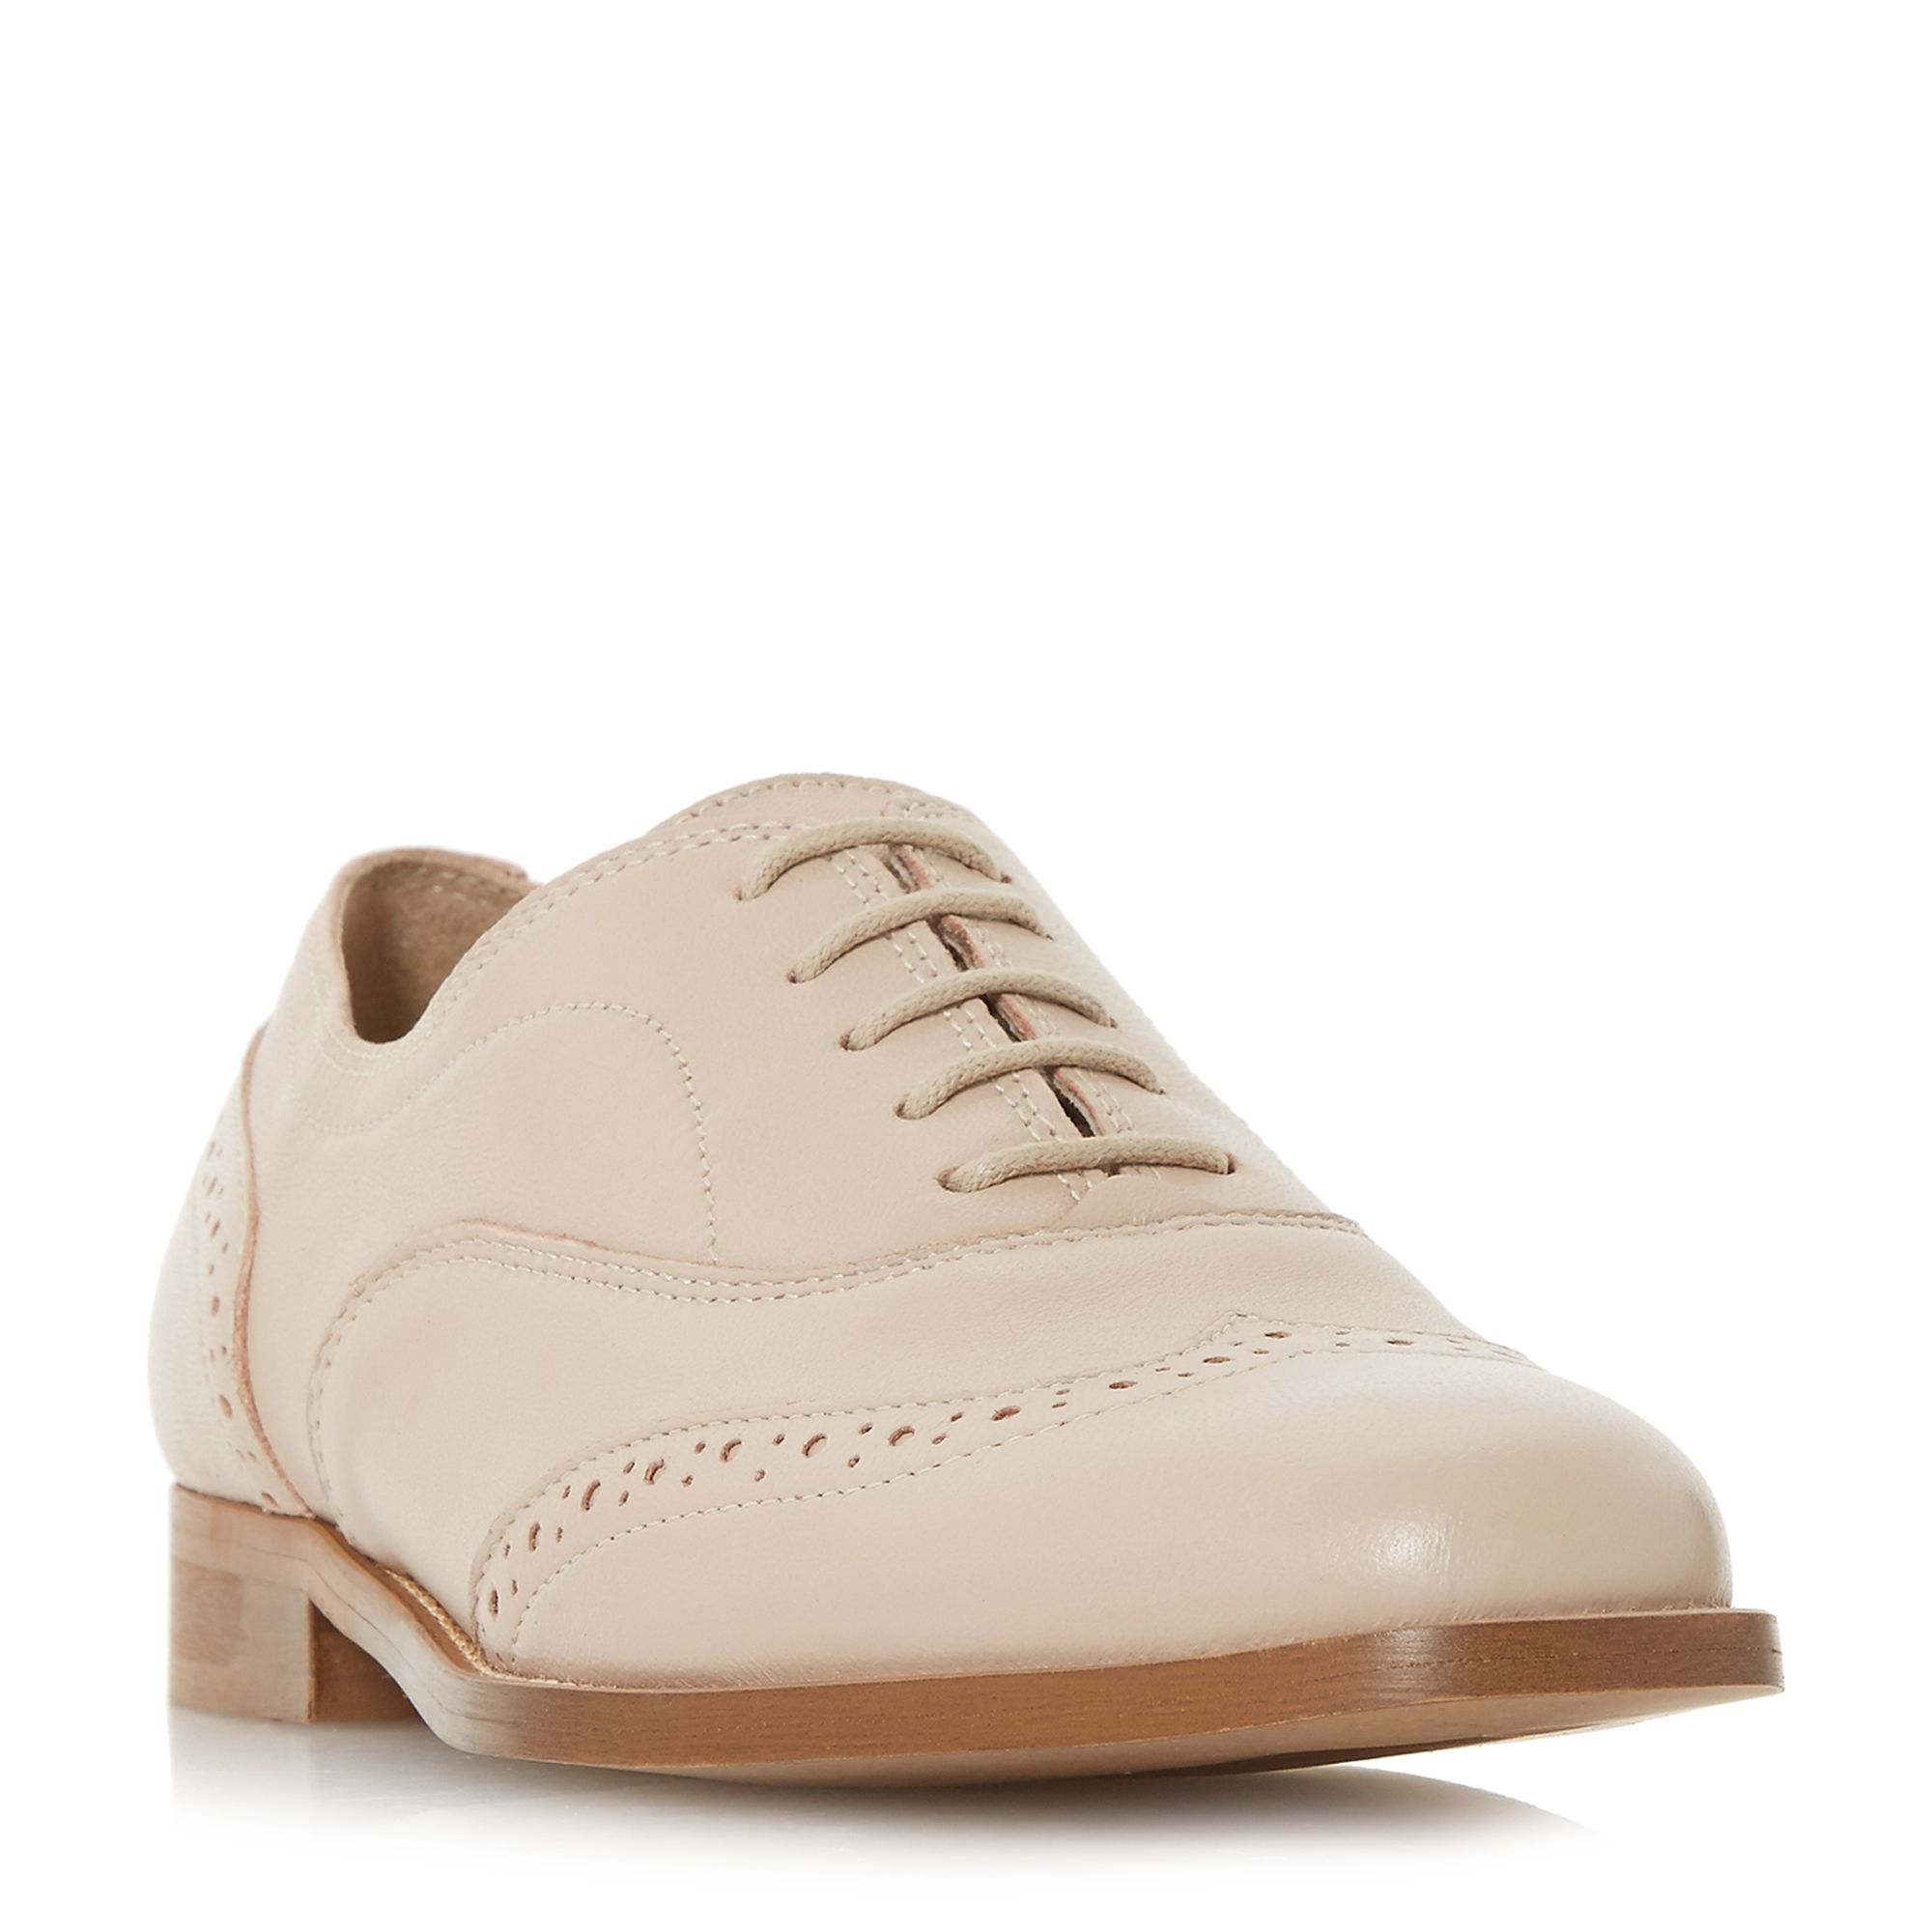 Dune Black Flaine Lace Up Brogue Shoes, Pink